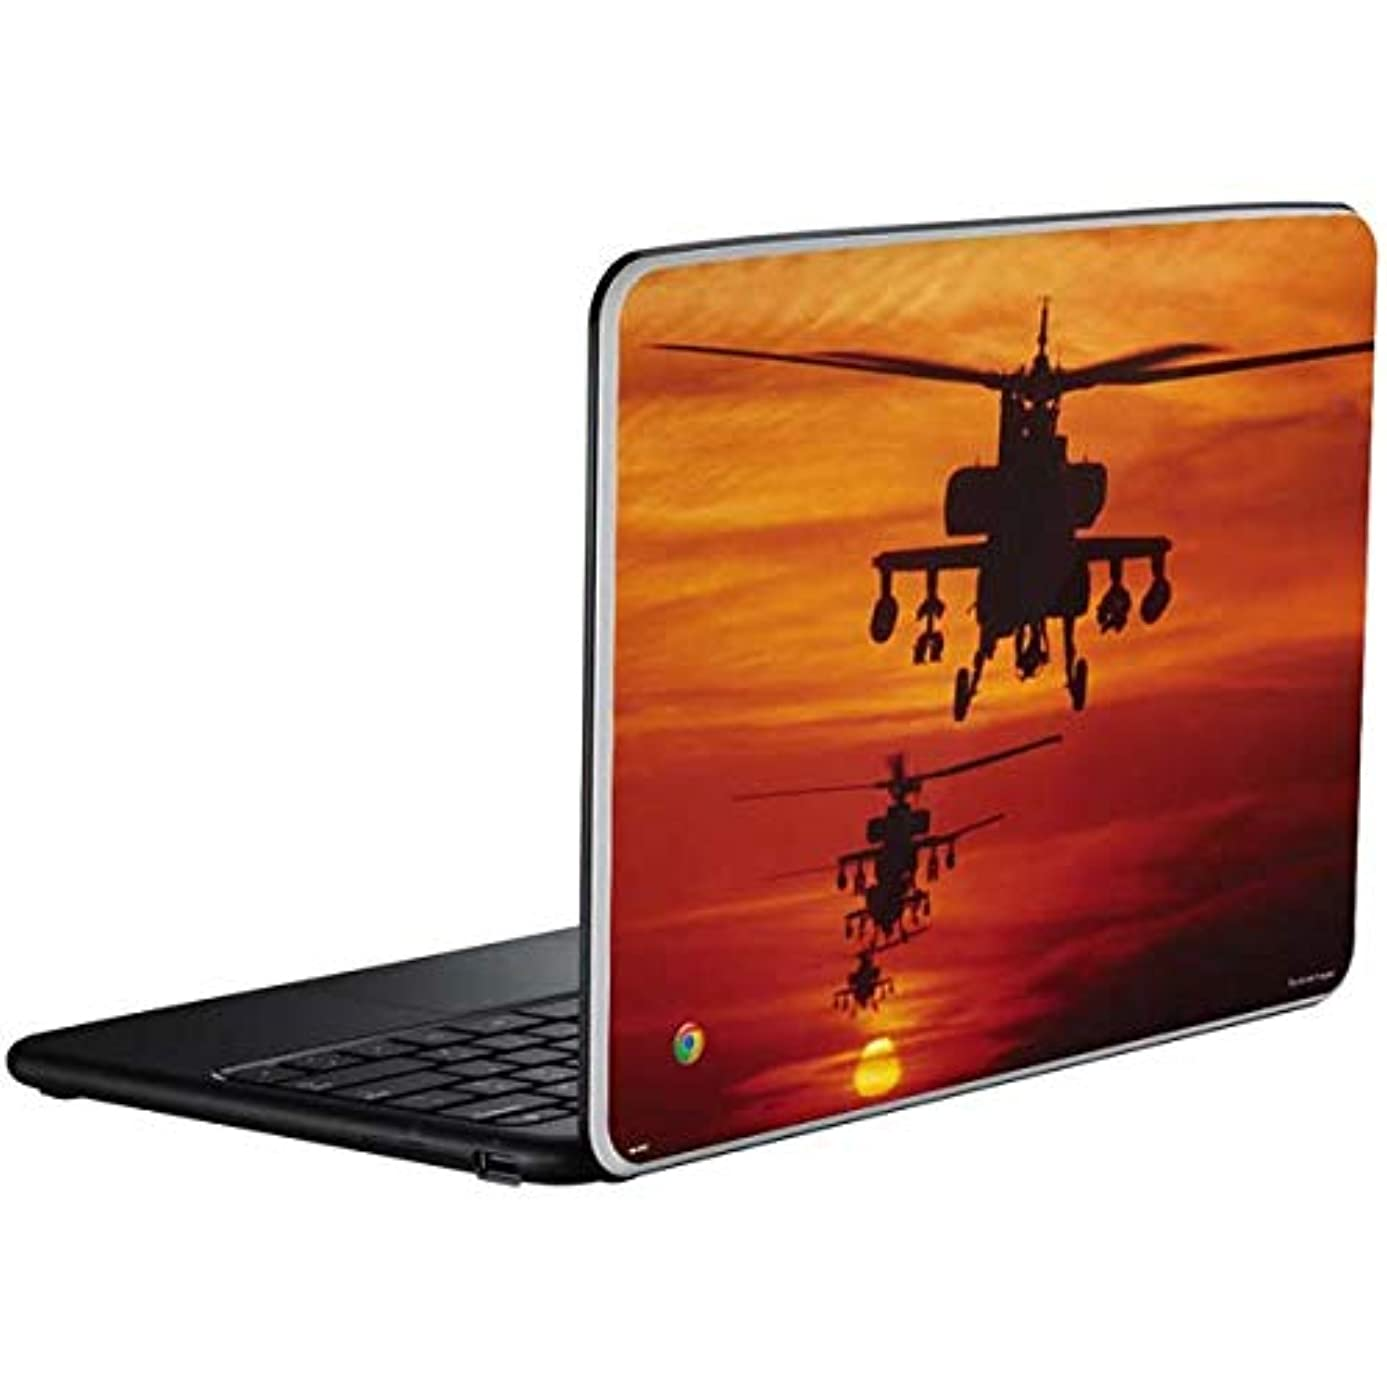 Skinit Four AH-64 Apache Helicopters Chromebook Skin - Officially Licensed StockTrek Galaxy Art Laptop Decal - Ultra Thin, Lightweight Vinyl Decal Protection